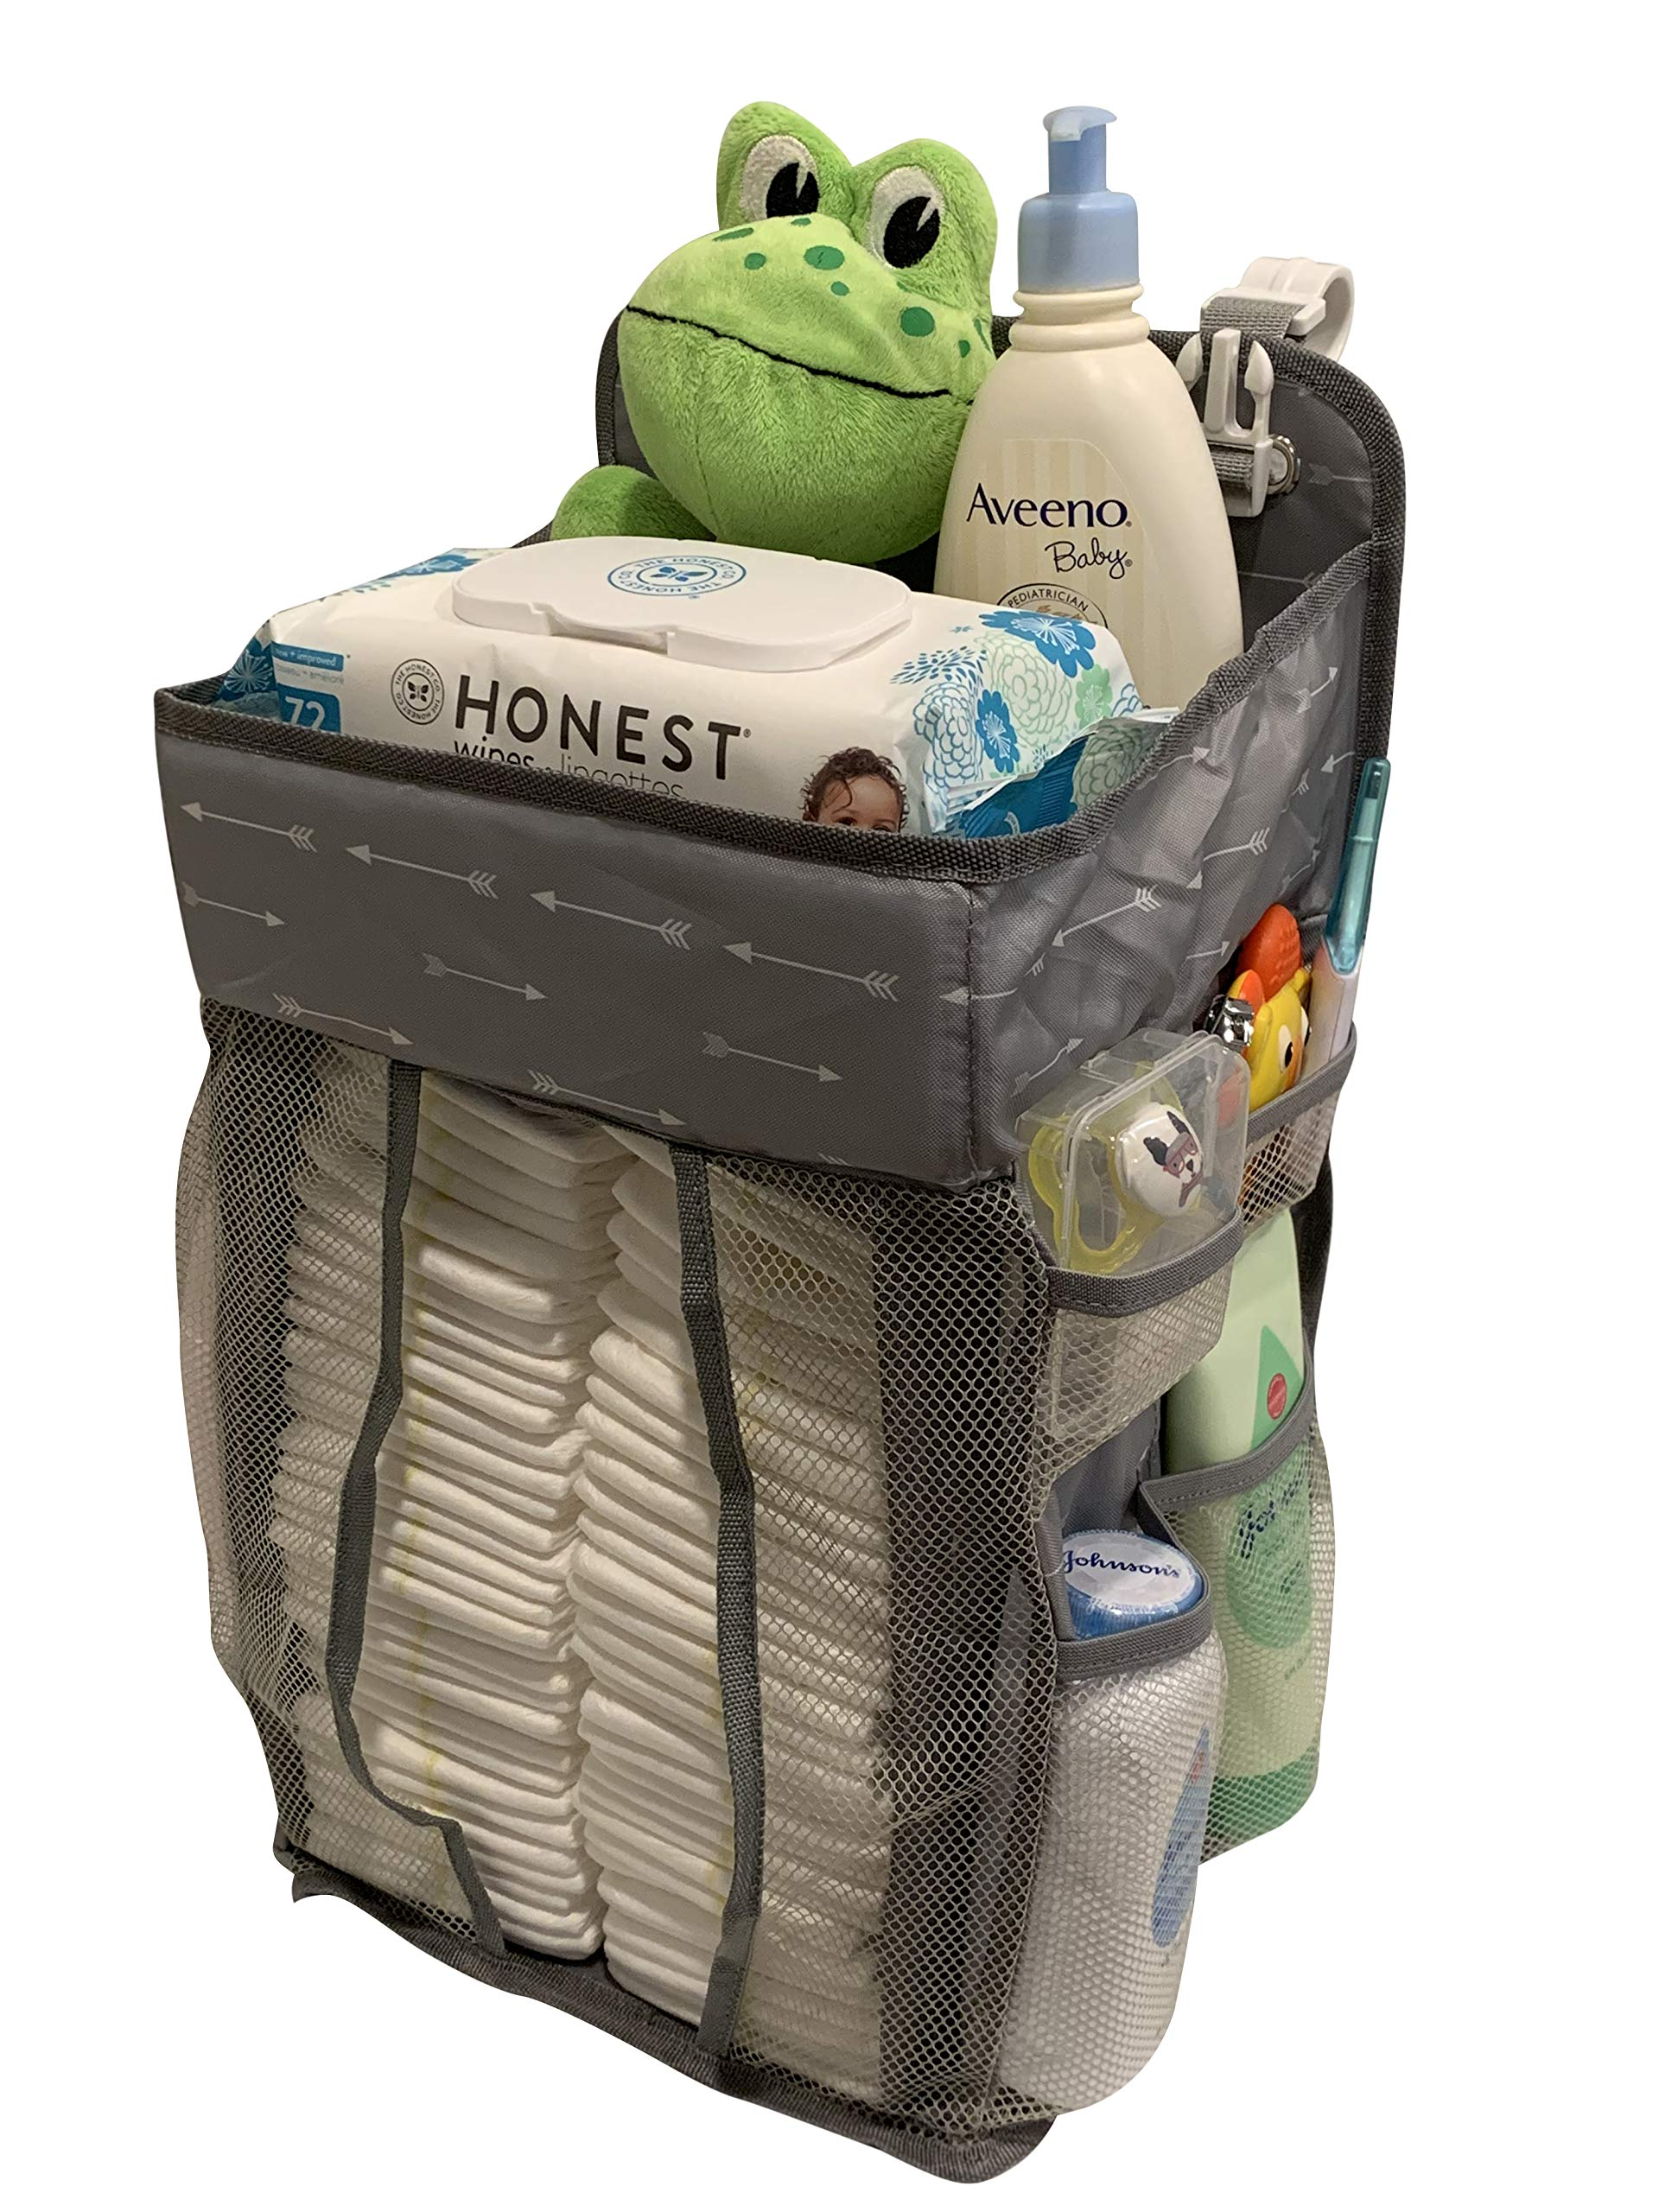 Hanging Nursery Organizer and Baby Diaper Caddy | Hanging Diaper Organization Storage for Baby Essentials | Hang on Crib, Changing Table or Wall by Piczel